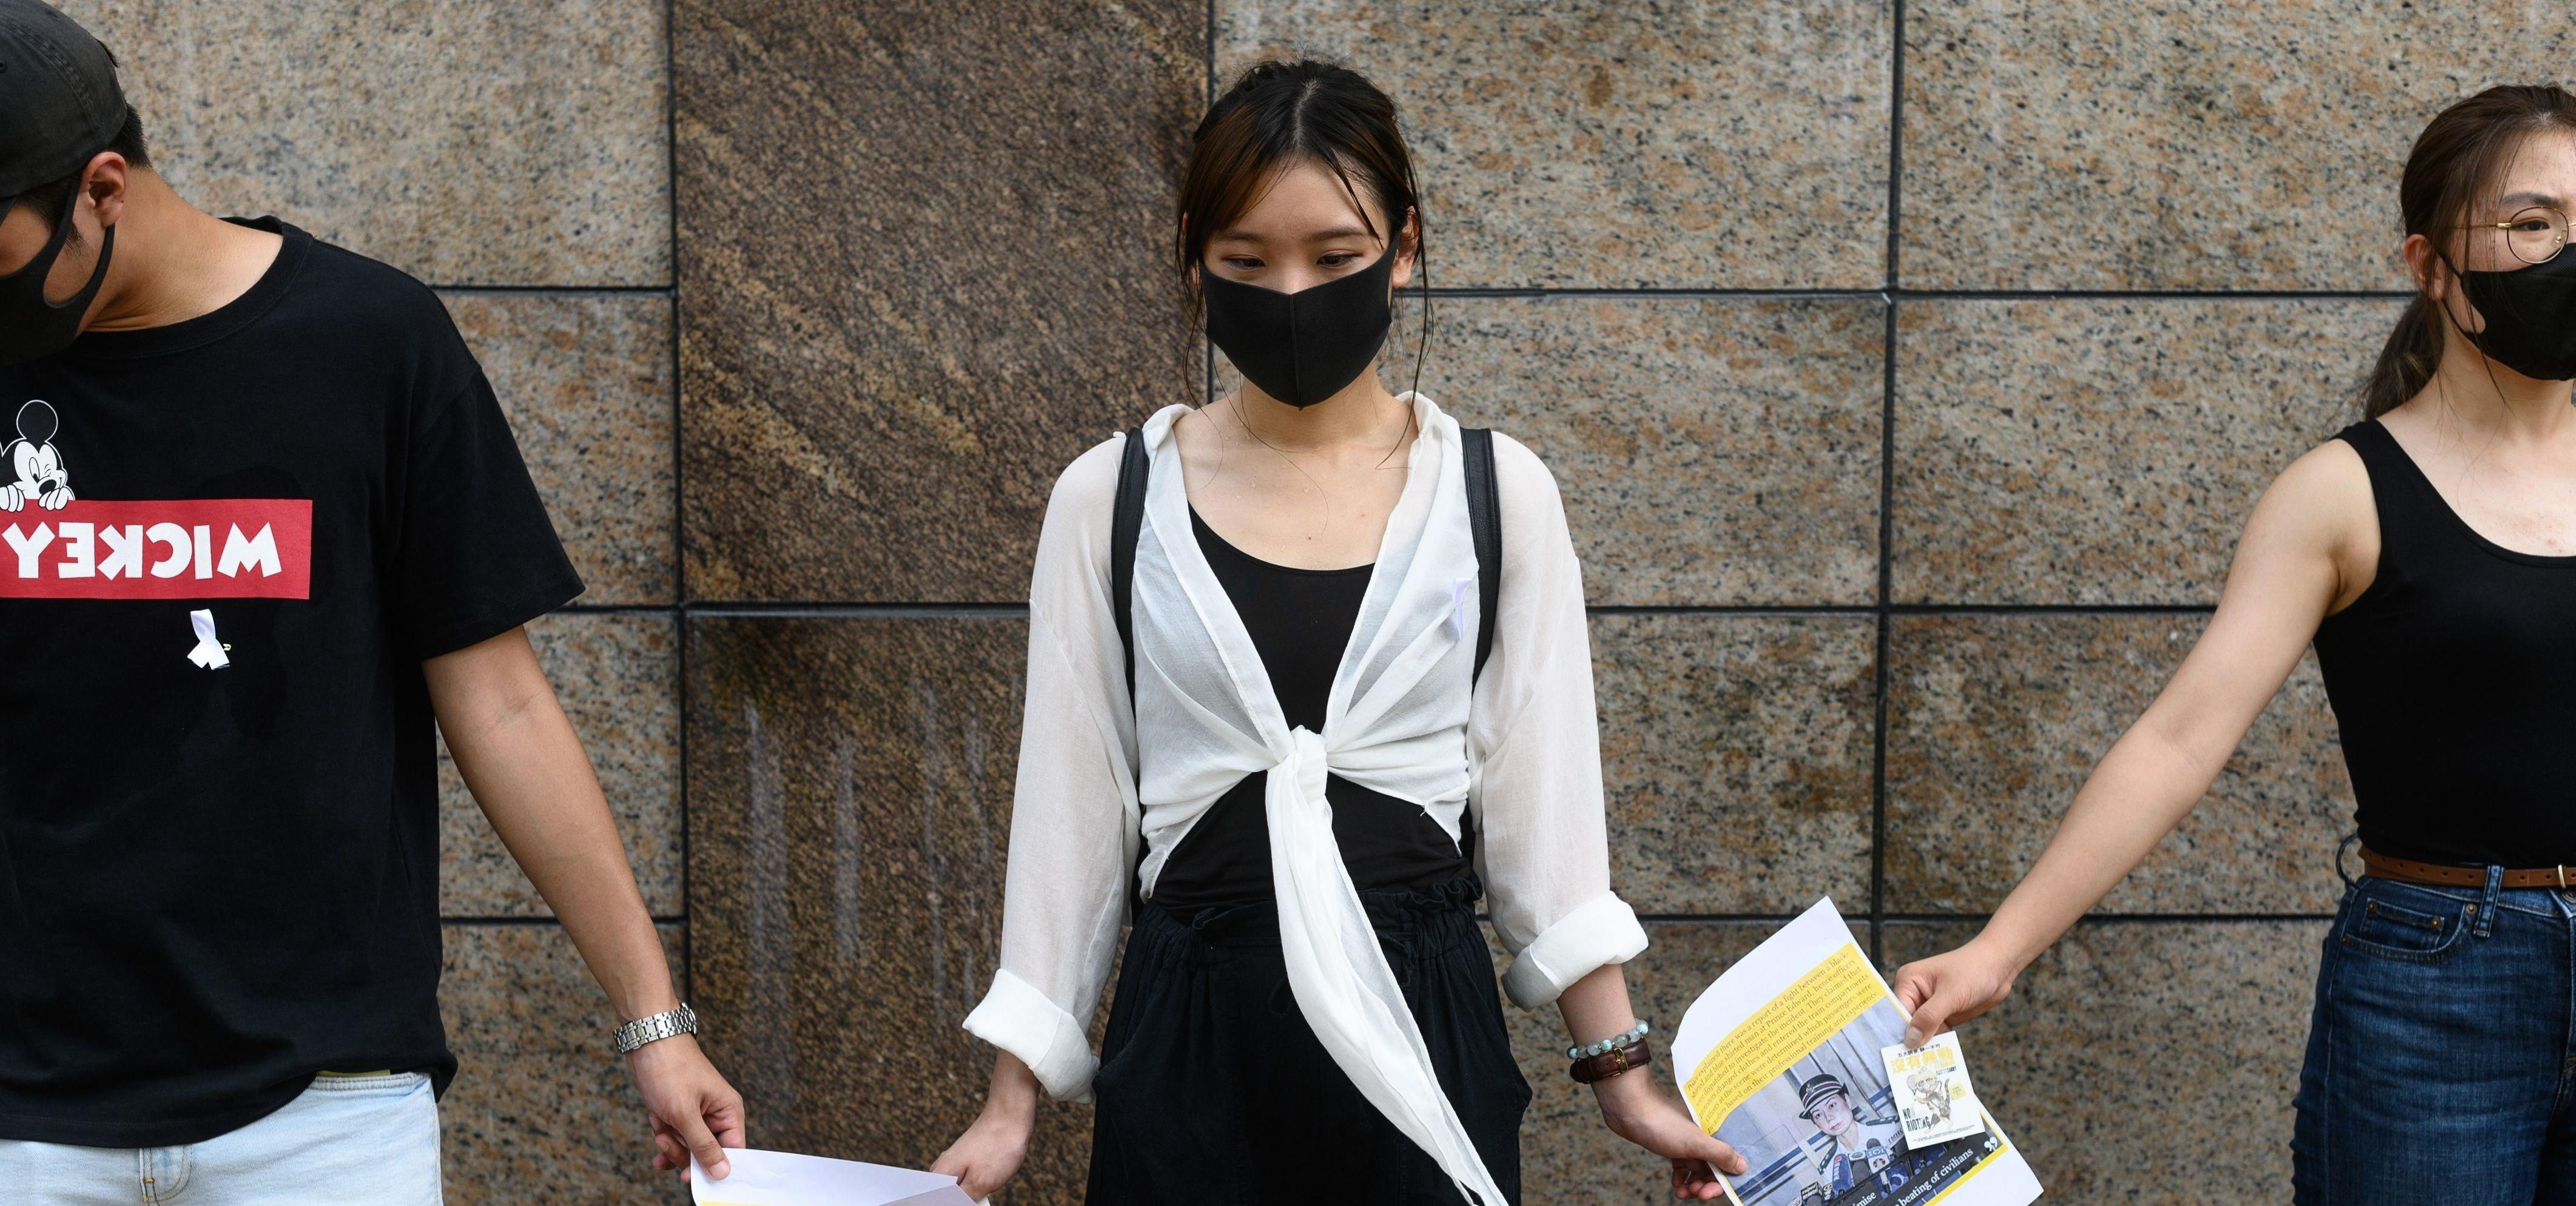 Hundreds Of Students In Hong Kong Formed Human Chains